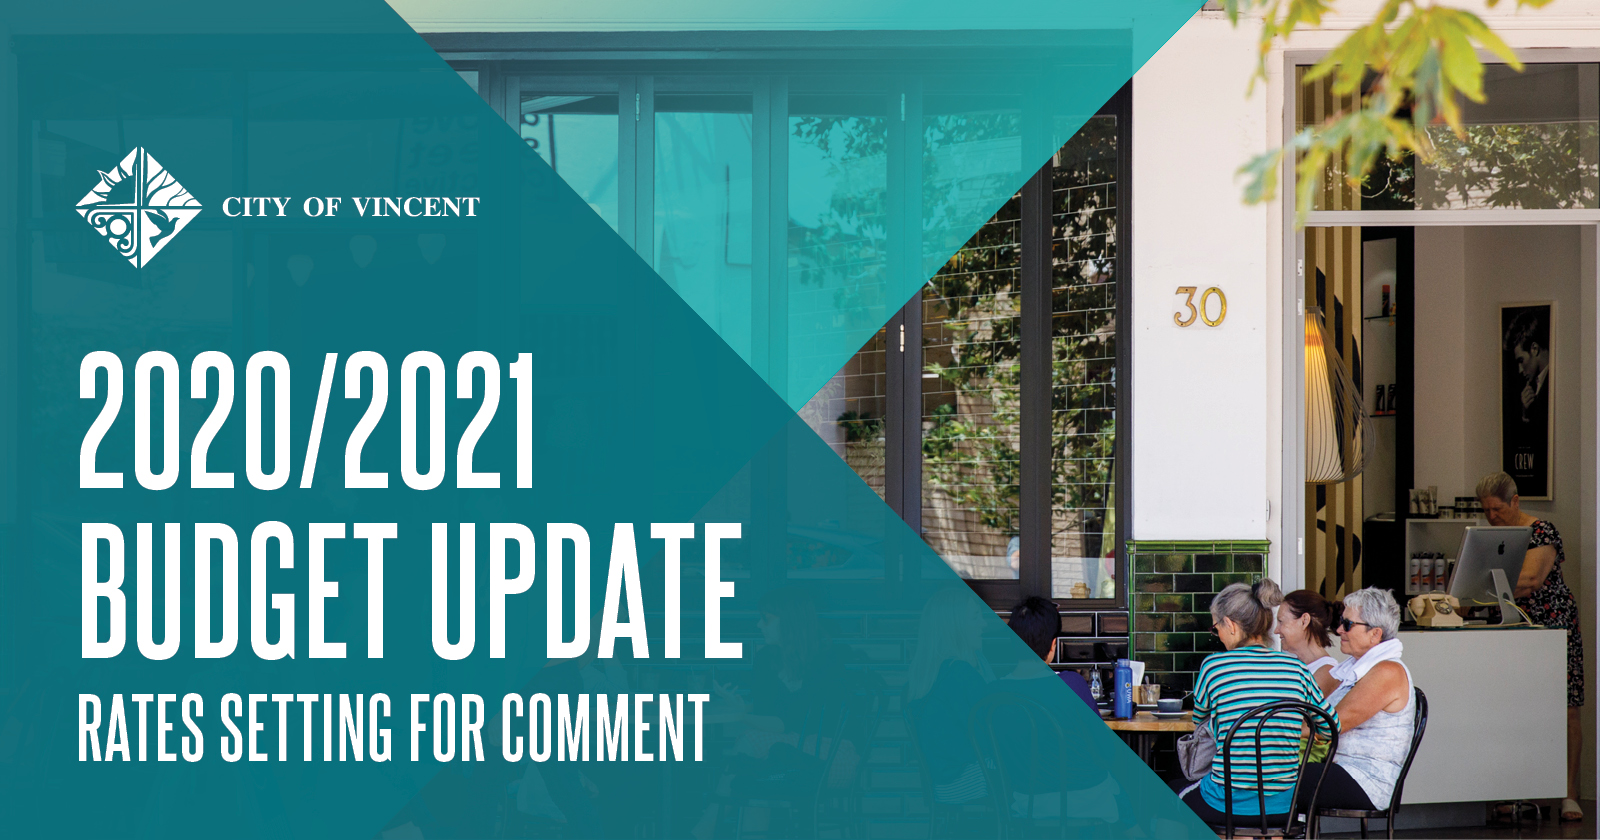 2020/21 Budget Update - Rates setting for comment